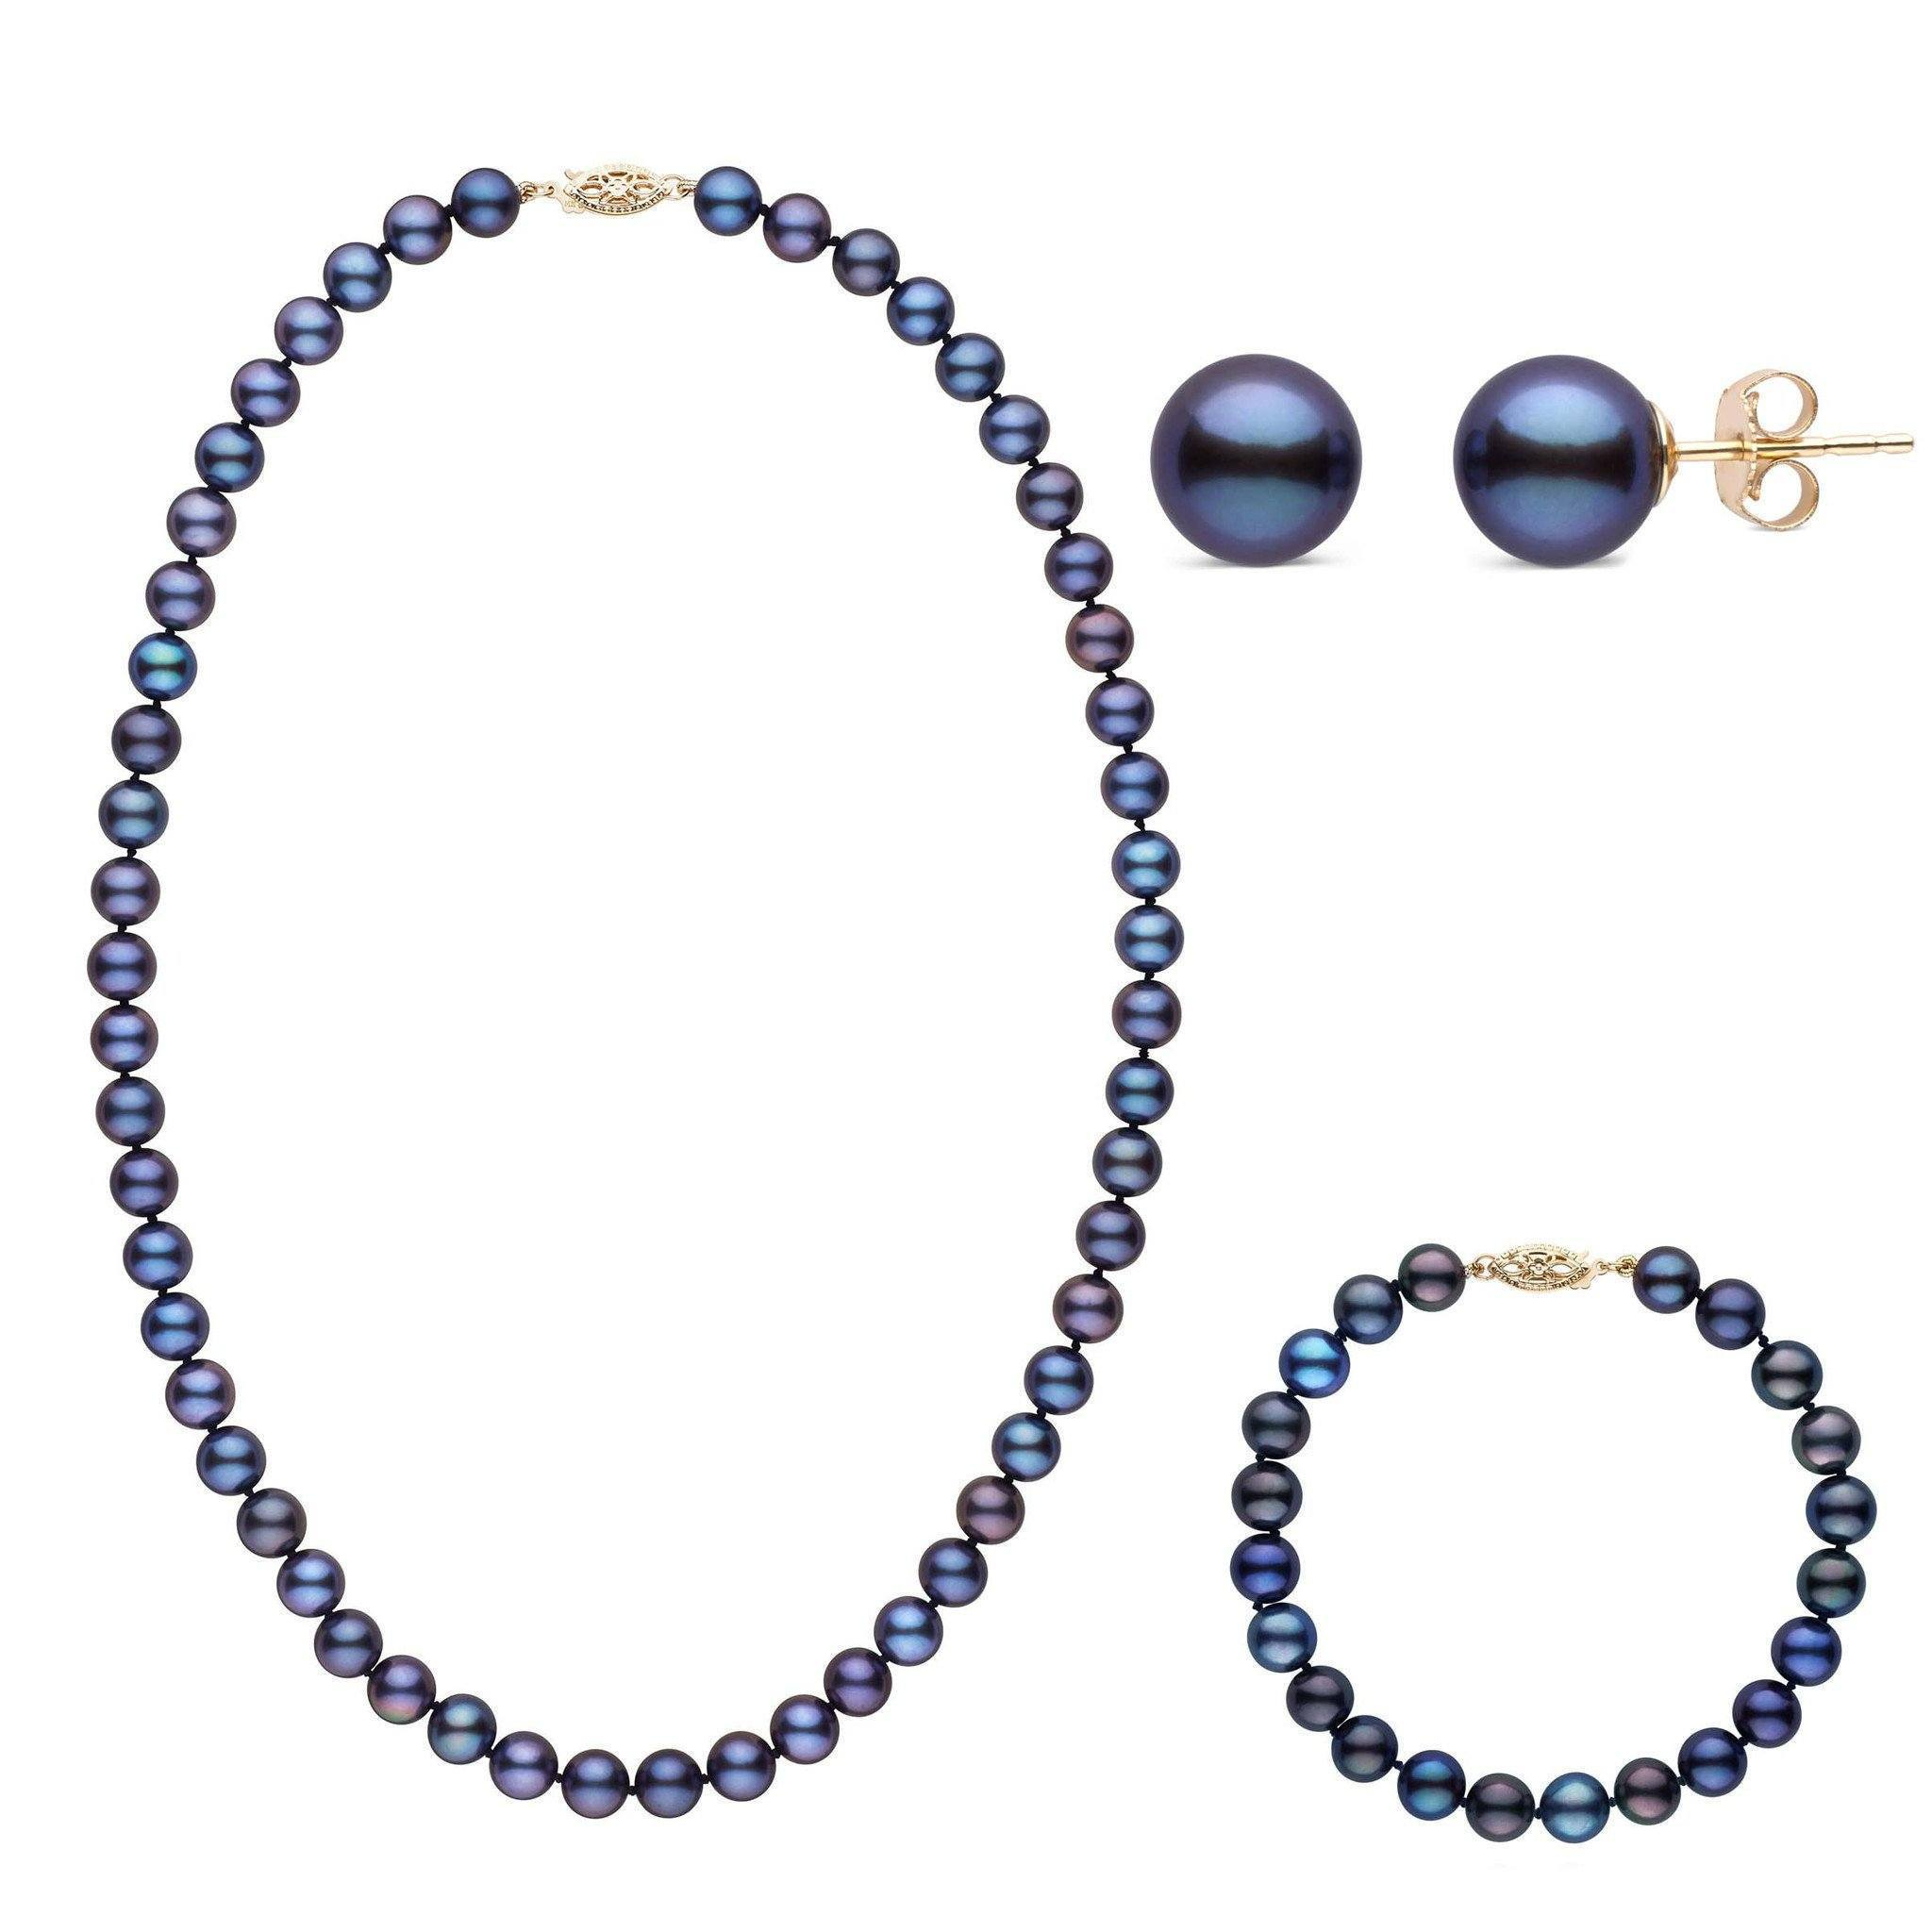 18 Inch 3 Piece Set of 7.5-8.0 mm AAA Black Freshwater Pearls